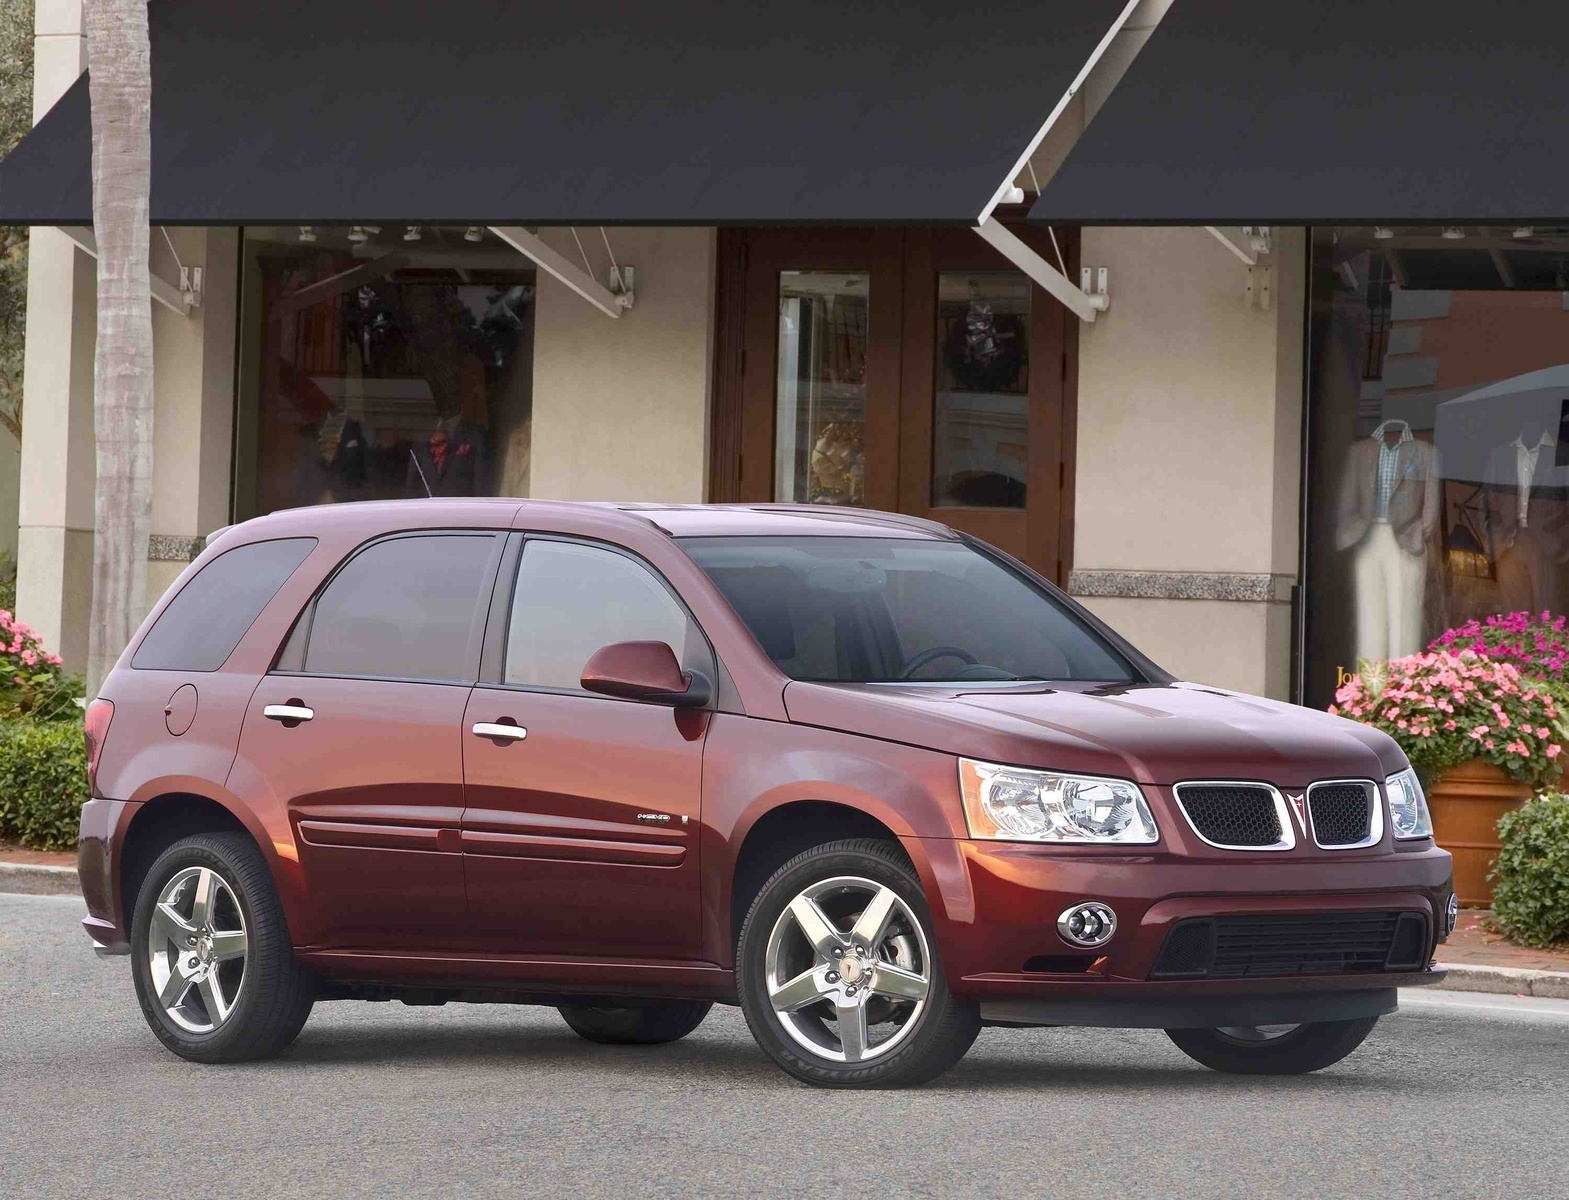 2009 Pontiac Torrent #18